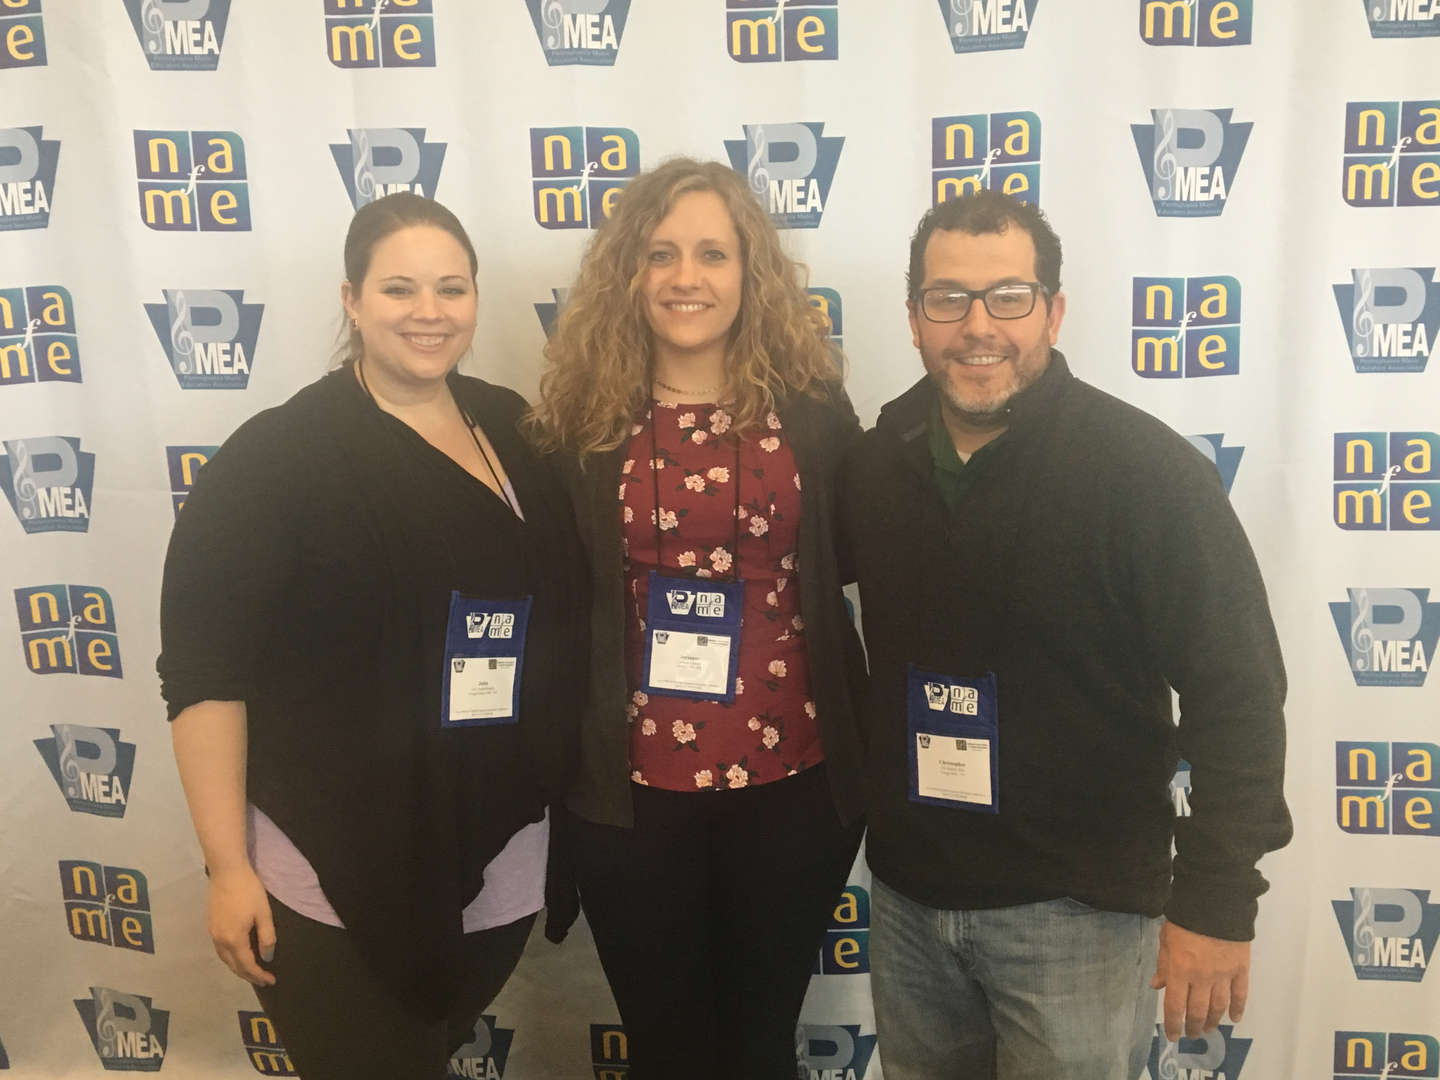 Yough music educators (Julia Aughenbaugh - YIMS Band Director, Jerianne Larson - YHS Band Director, Chris Ritz - YHS Chours Director) were in attendance at the PMEA All State/NAFME All East Conference.